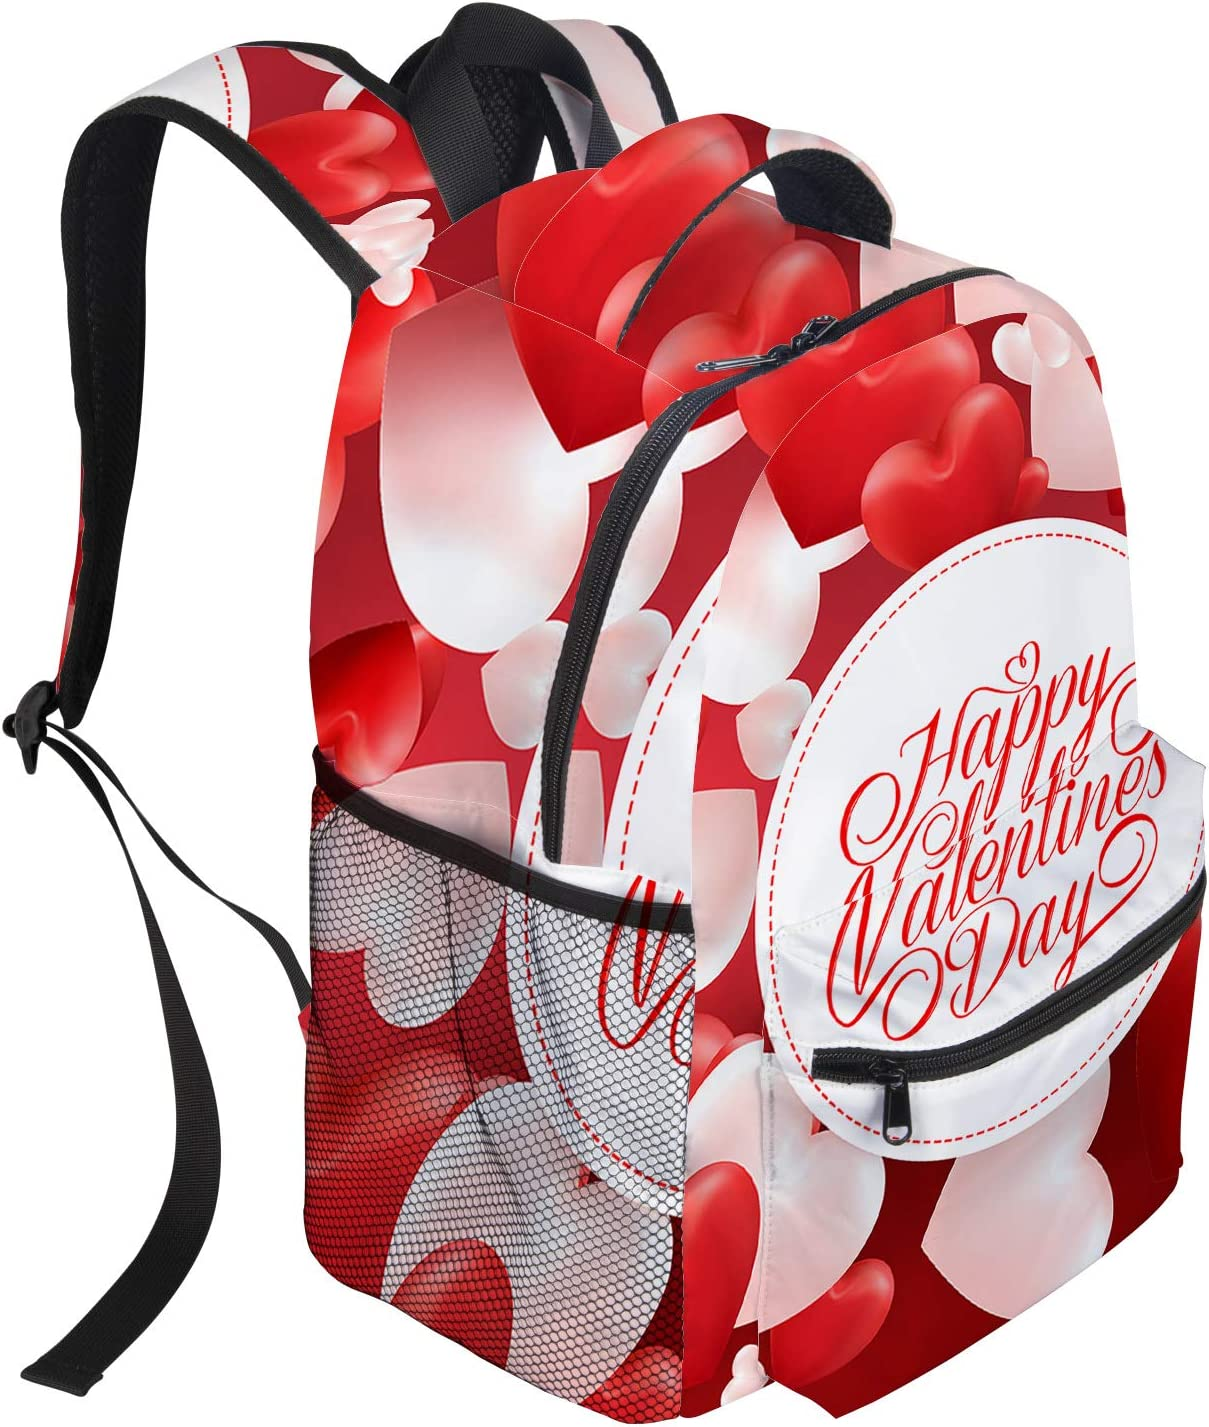 Little Girl And Heart Shaped Balloon Unique Outdoor Shoulders Bag Fabric Backpack Multipurpose Daypacks For Kids